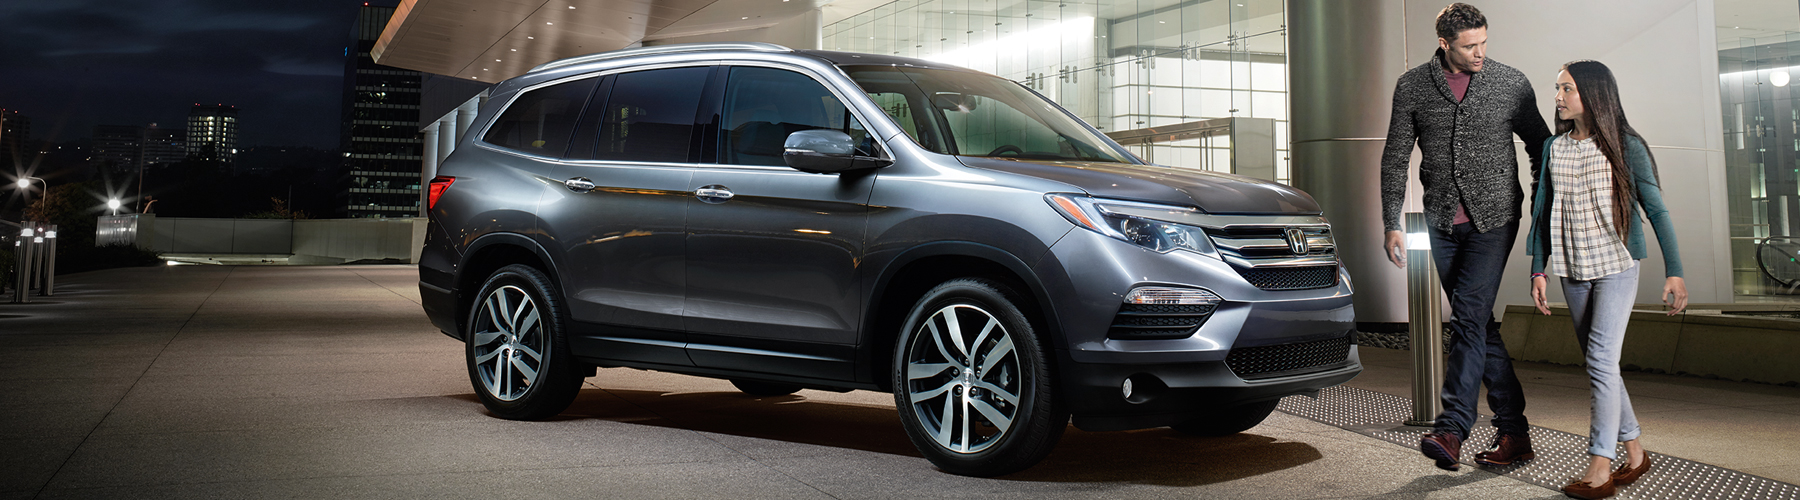 drive enjoy technology with features honda pilot the slider more